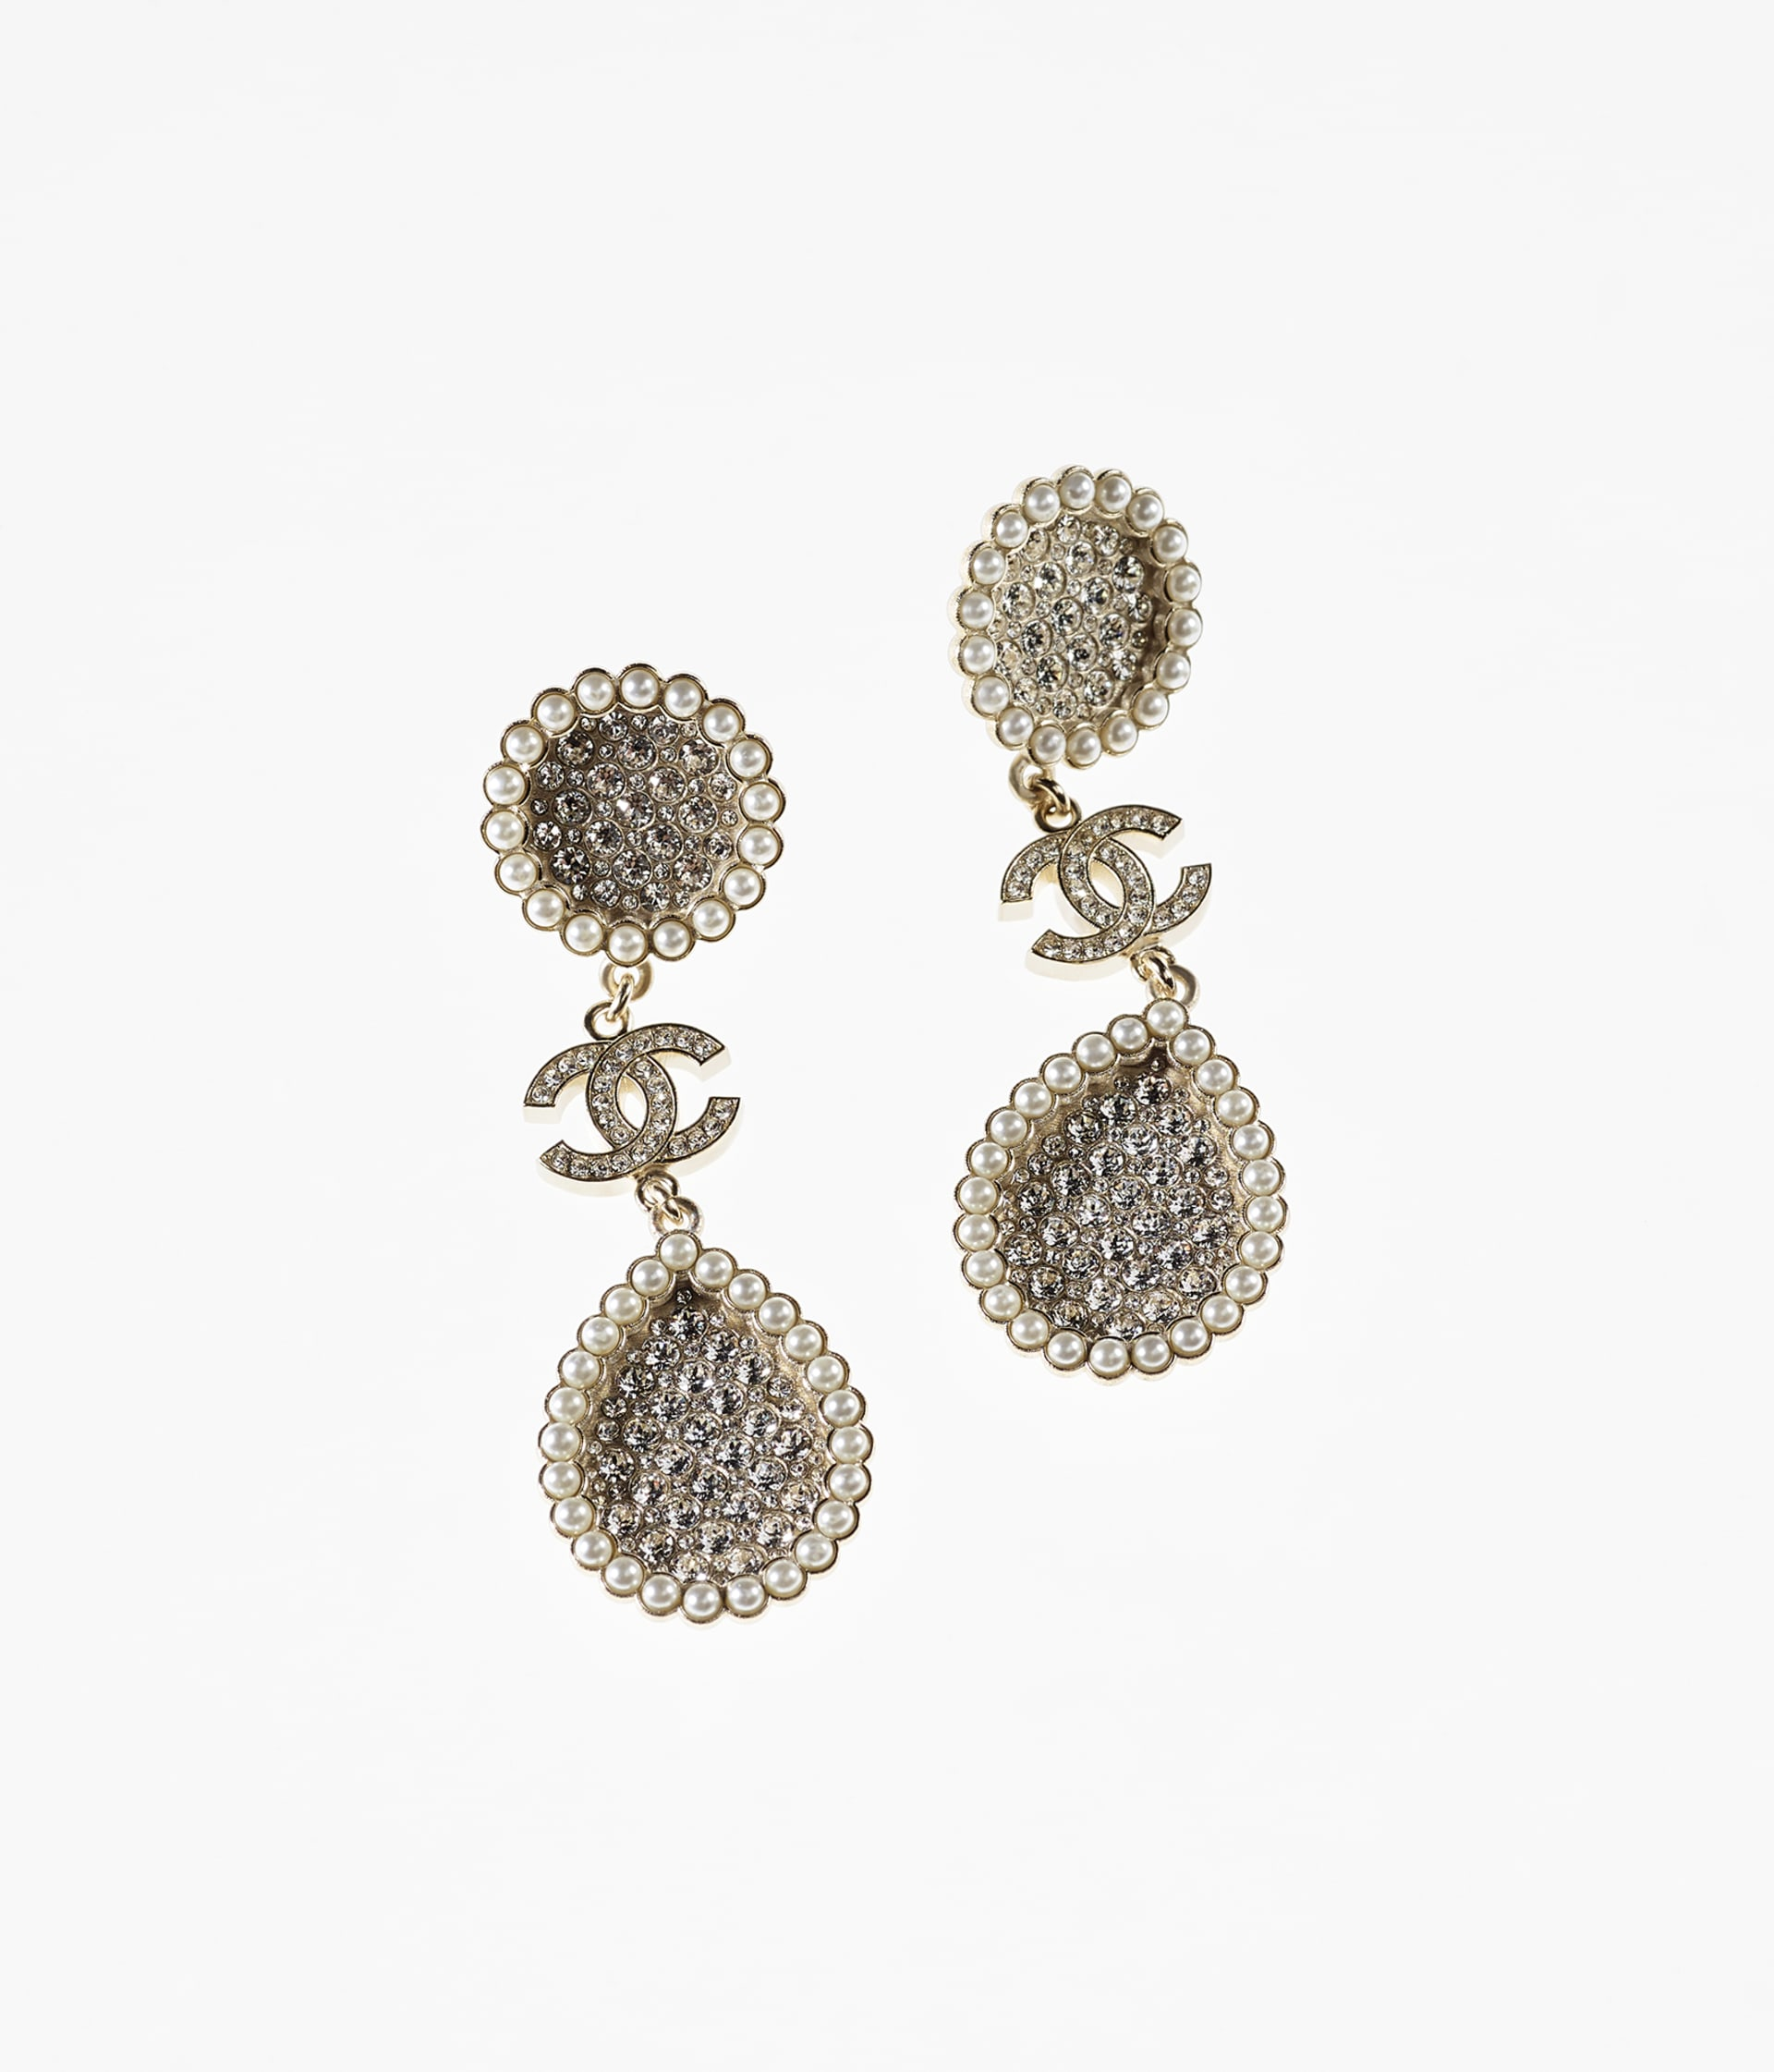 image 1 - Earrings - Metal, Strass & Glass Pearls - Gold, Crystal & Pearly White